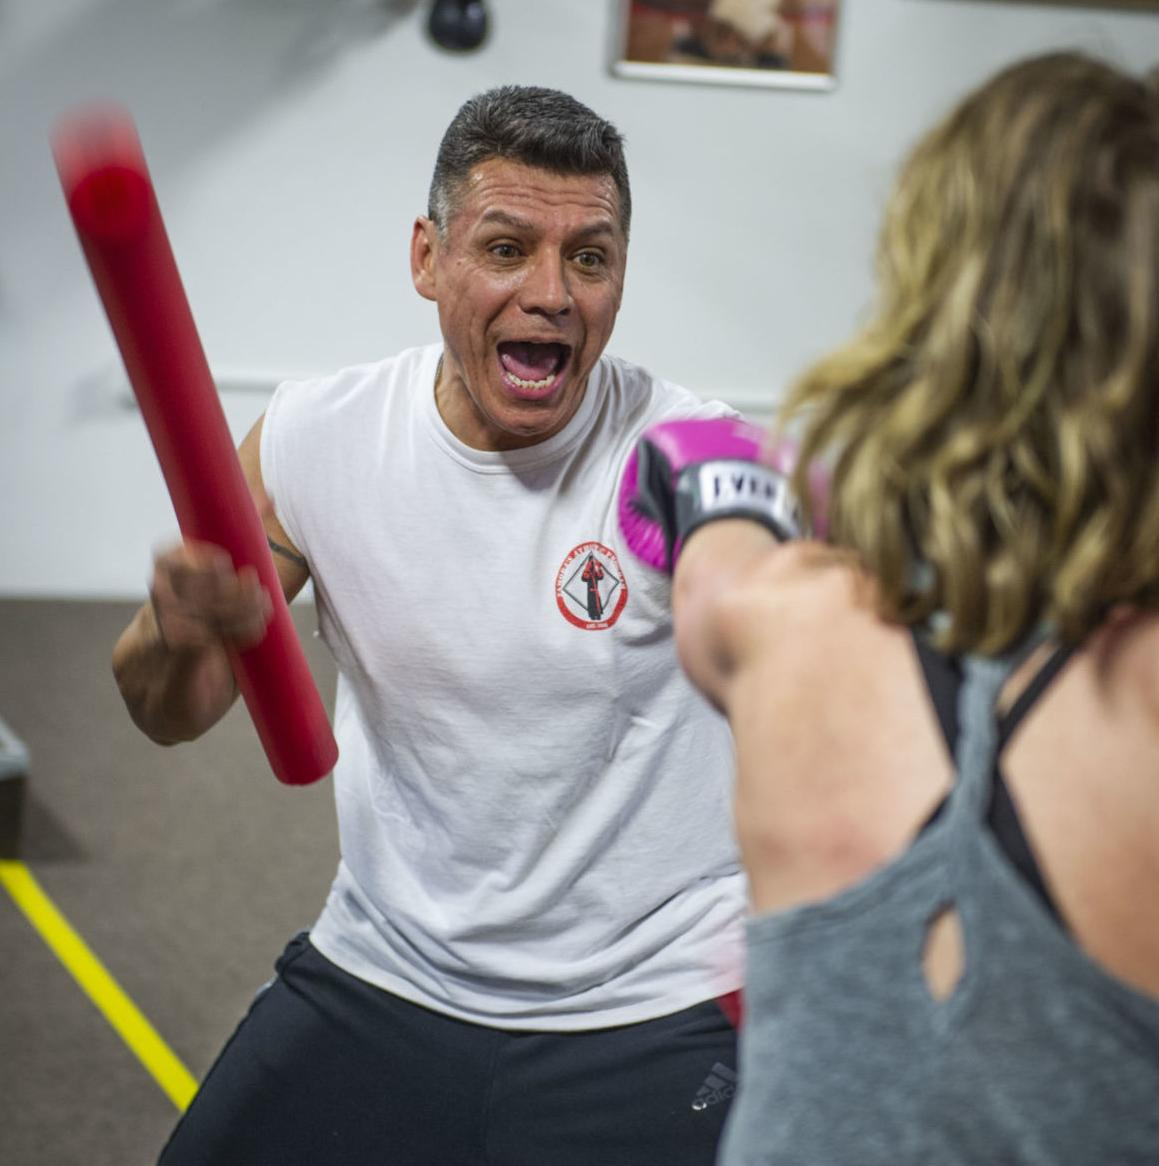 Boxing for love 1